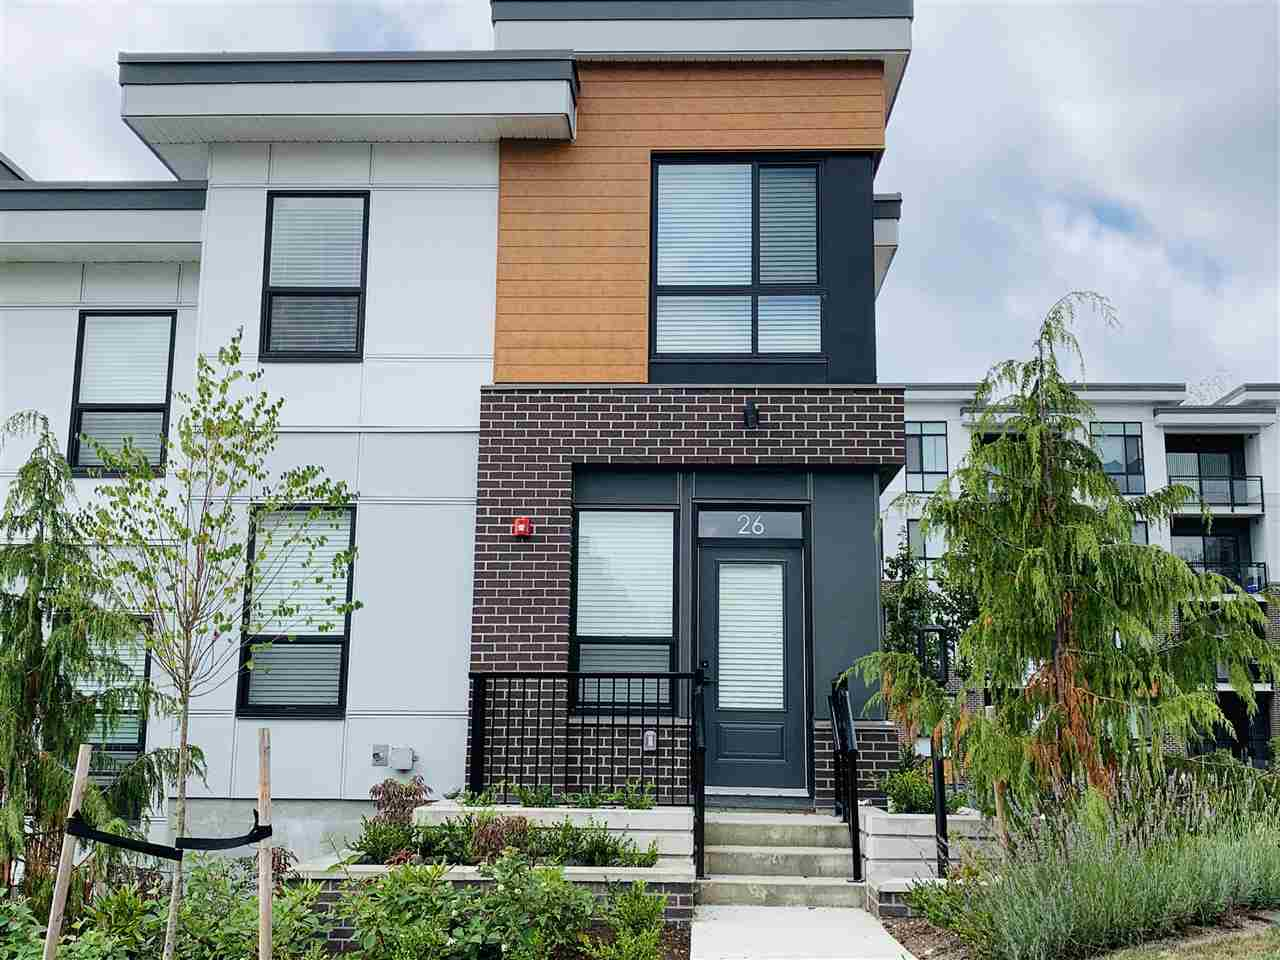 26 20087 68 AVENUE - Willoughby Heights Townhouse for sale, 3 Bedrooms (R2528695) - #1